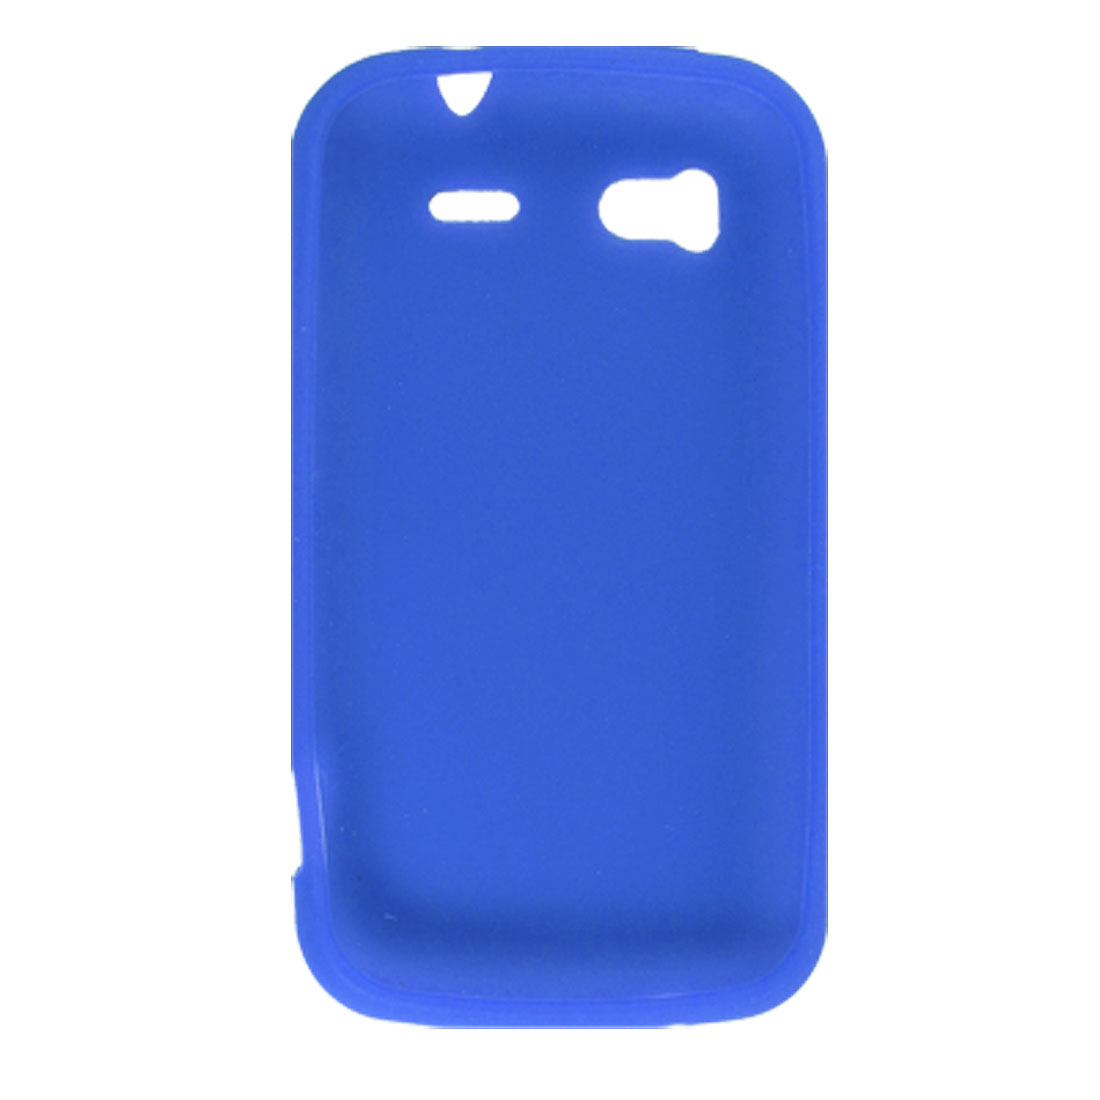 Protective Silicone Skin Cover Blue for HTC Sensation 4G